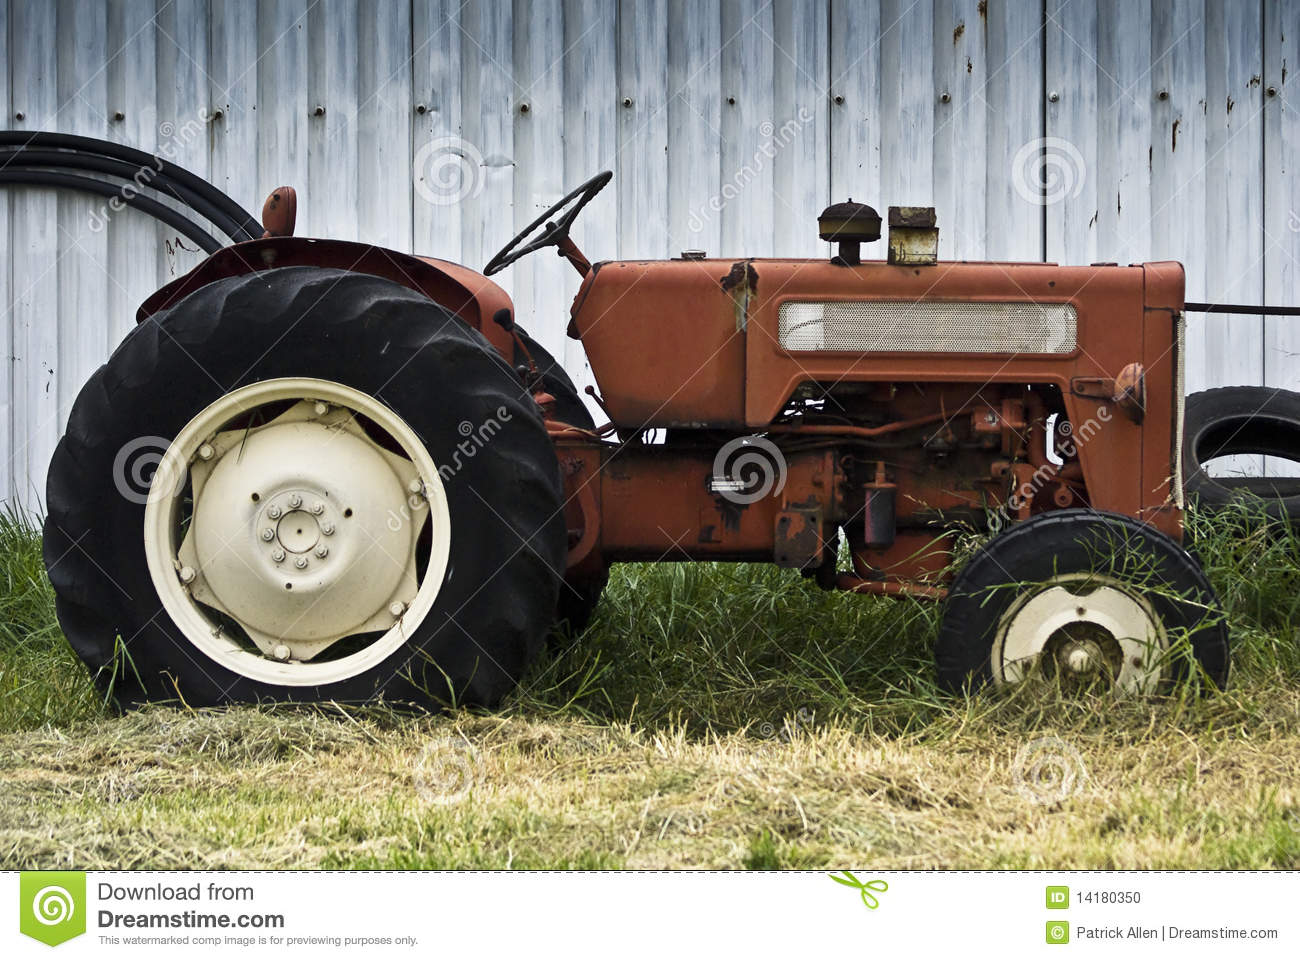 old tractor parked in the colorful yellow autumn weeds john deere tractor clipart black white john deere tractor clip art free